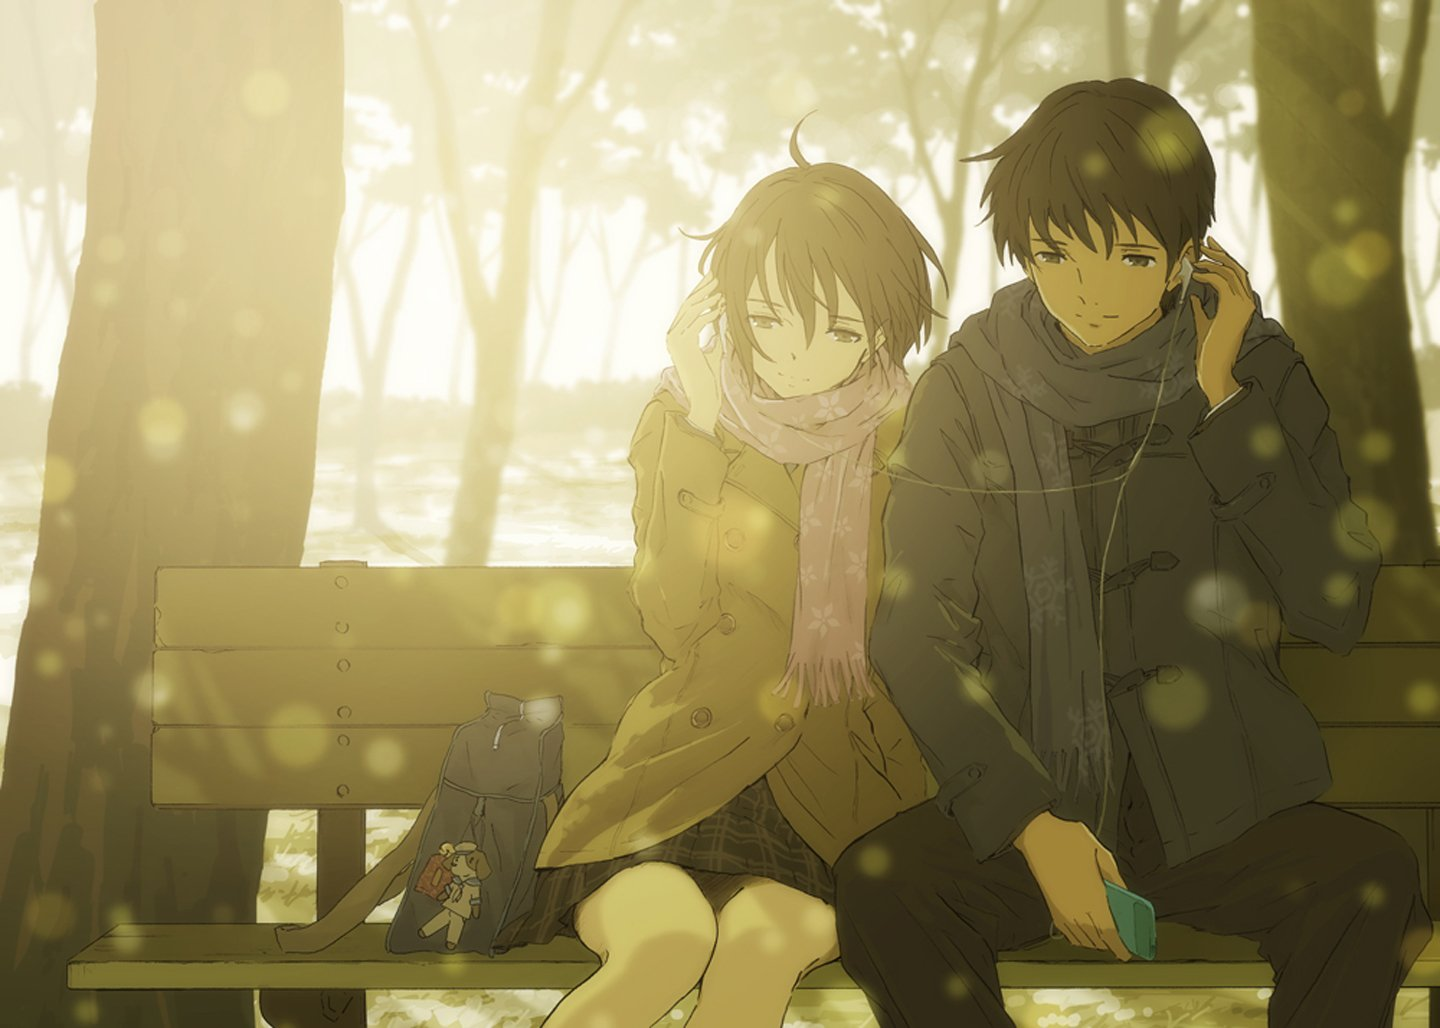 Cute Hugging Couples Wallpapers Anime Love Couple Music Headphone Tree Winter Sunshine